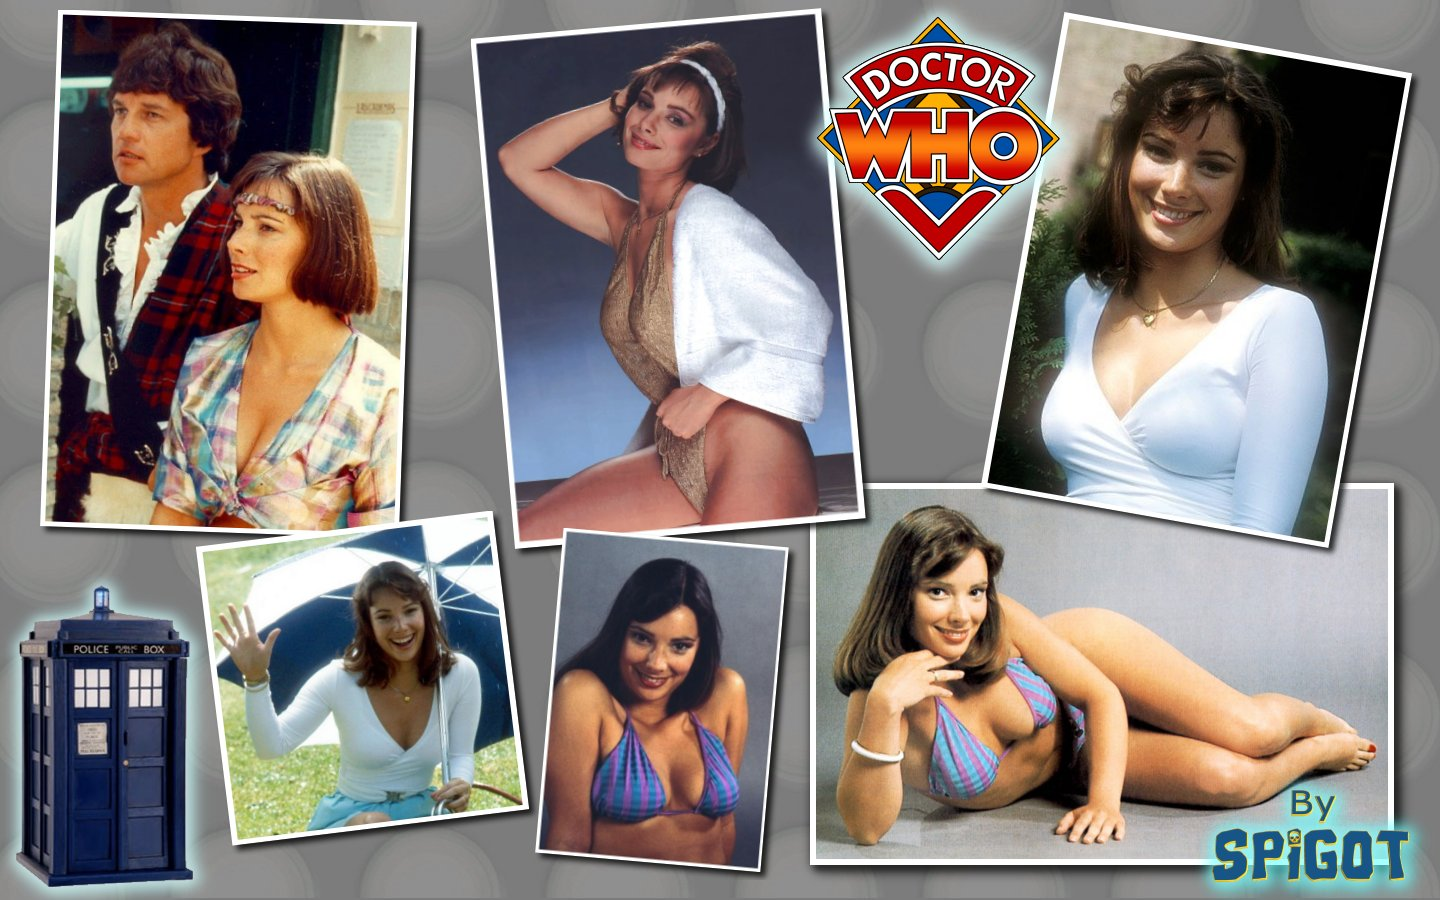 doctor who companions nude